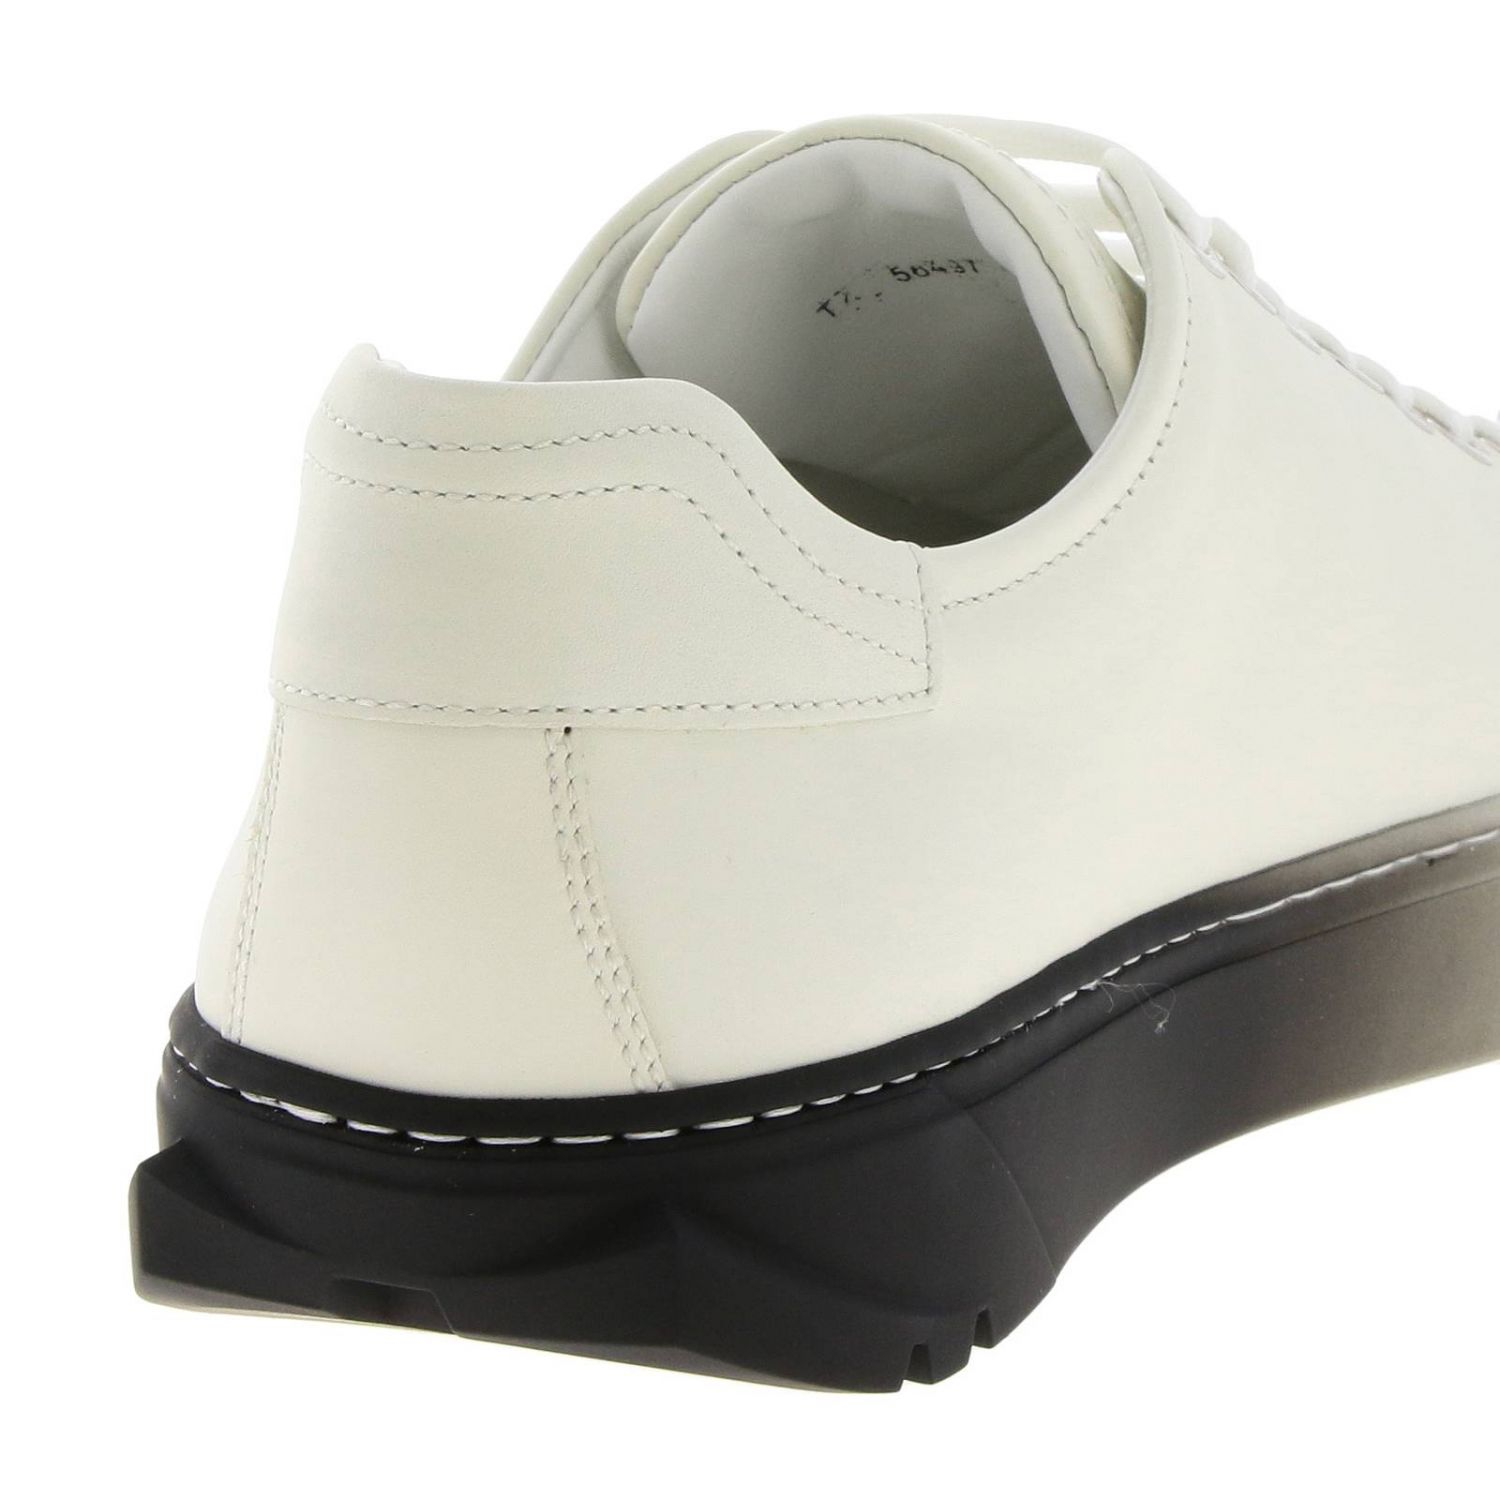 Shoes men Salvatore Ferragamo white 4